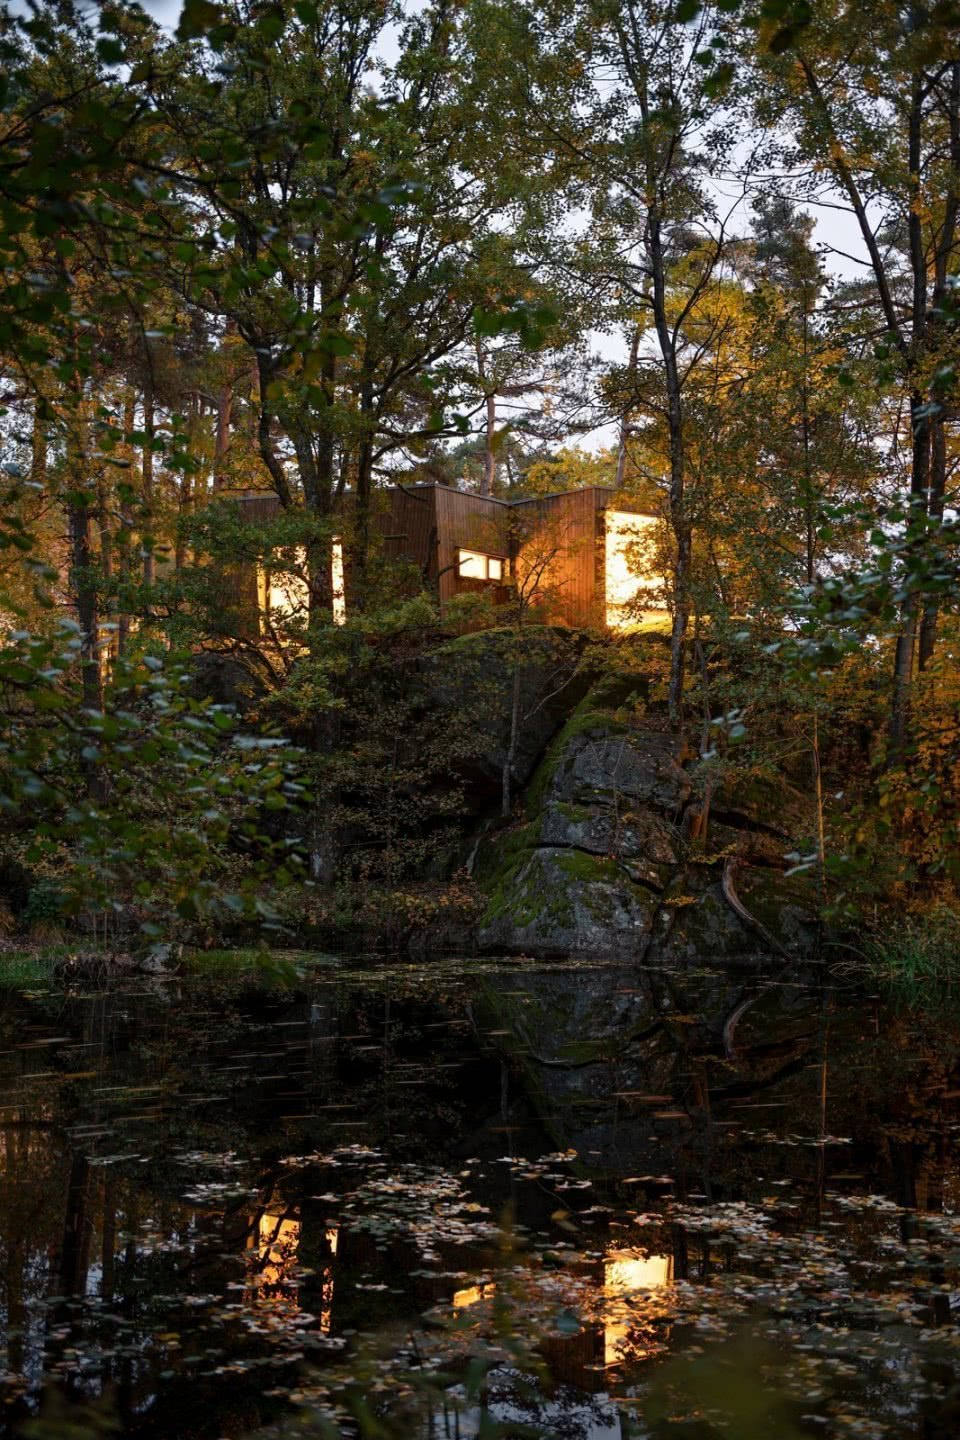 the-cabins-large-windows-allow-an-unparalleled-view-of-the-pond-it-overlooks-while-lush-greenery-seems-to-almost-cover-the-exterior